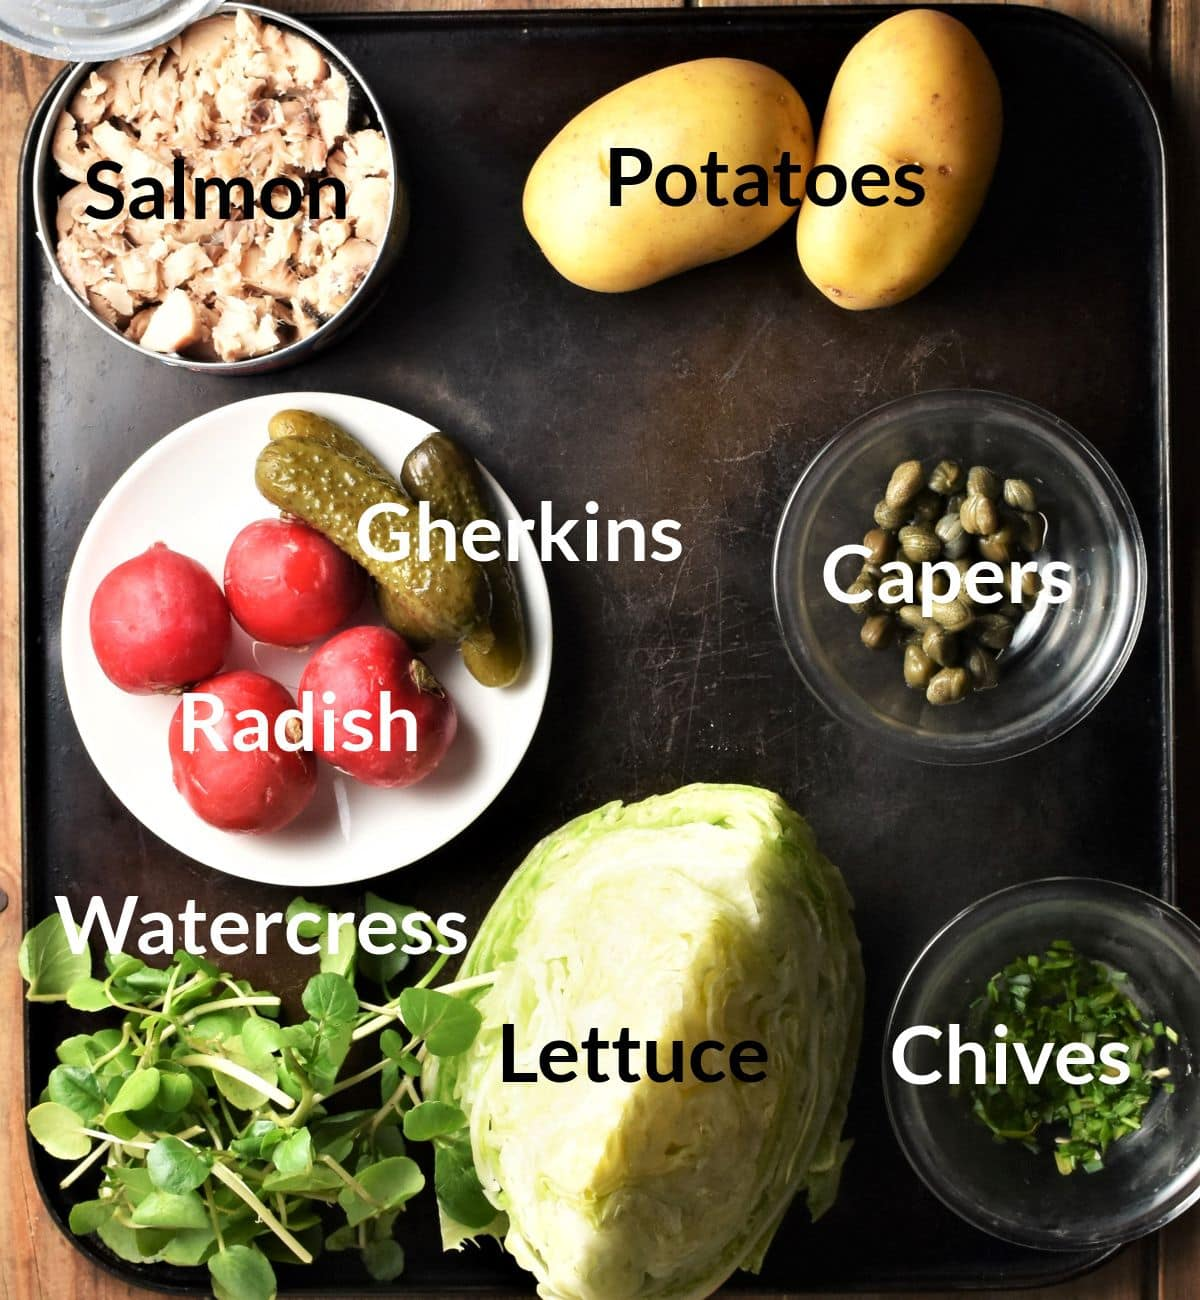 Ingredients for making tinned salmon salad in individual dishes.